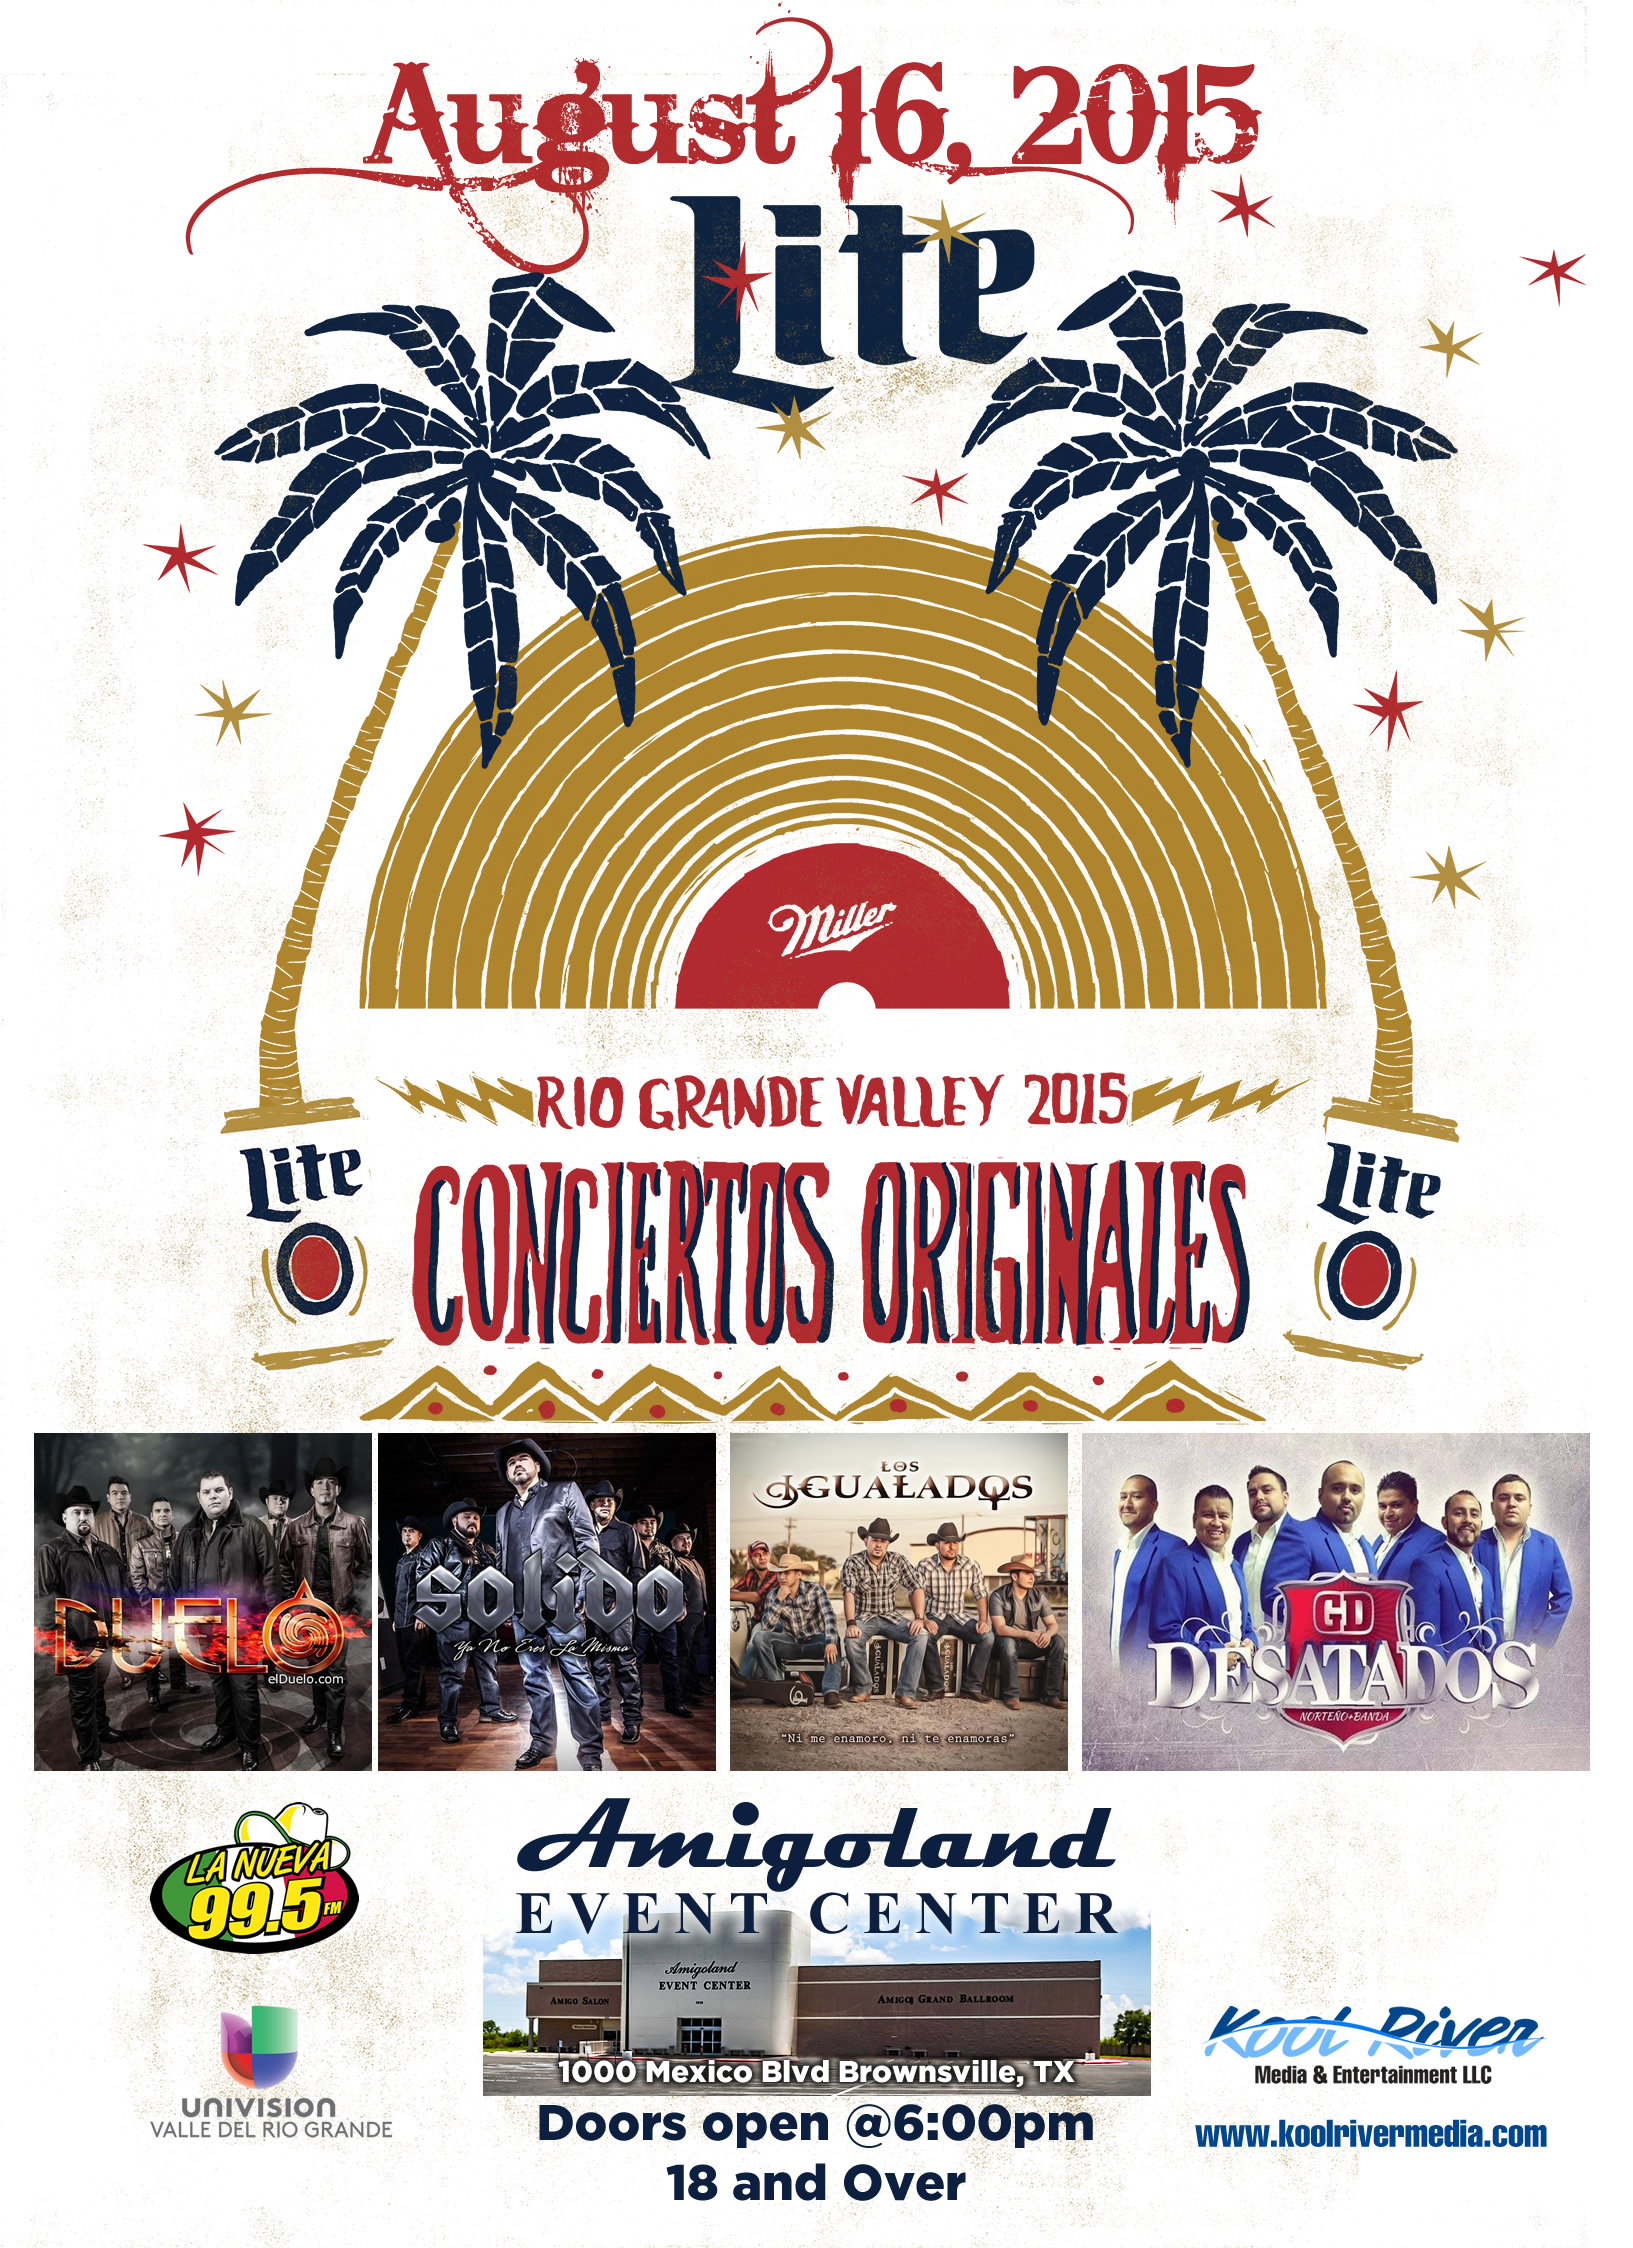 amigoland_concert_poster_brownsville